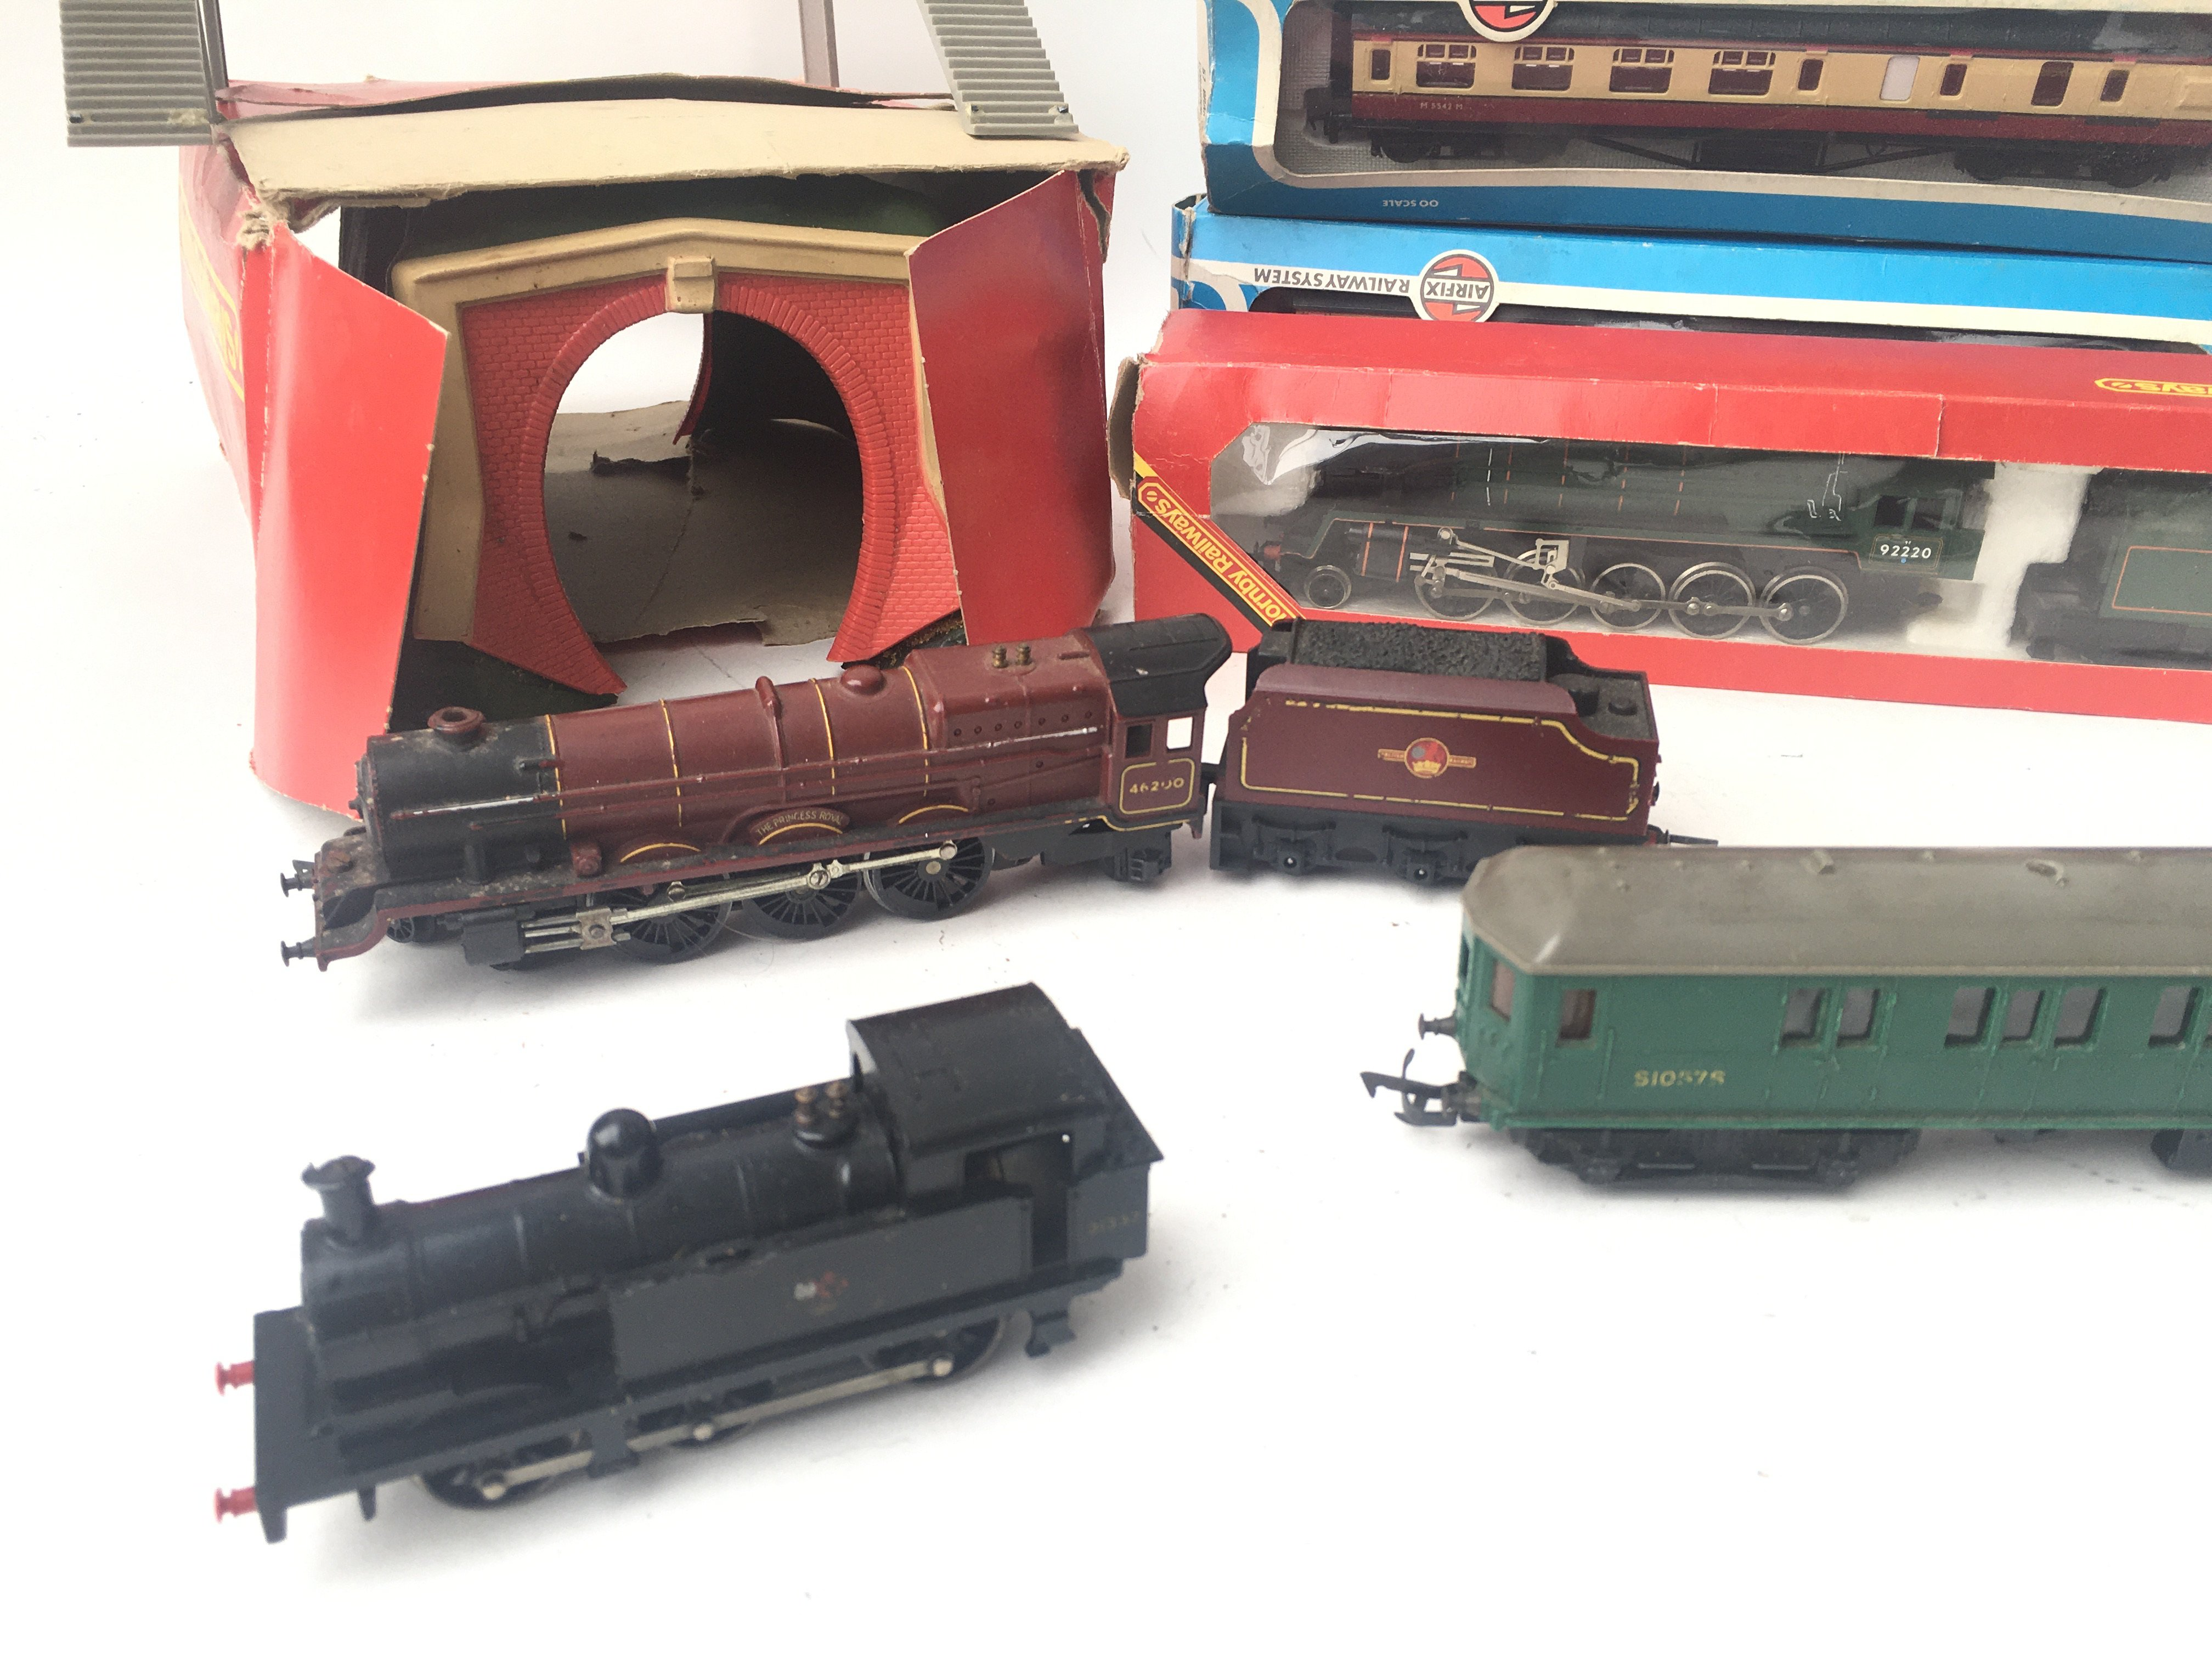 A Box Containing a Collection of Tri-Ang/Hornby/Ai - Image 2 of 3